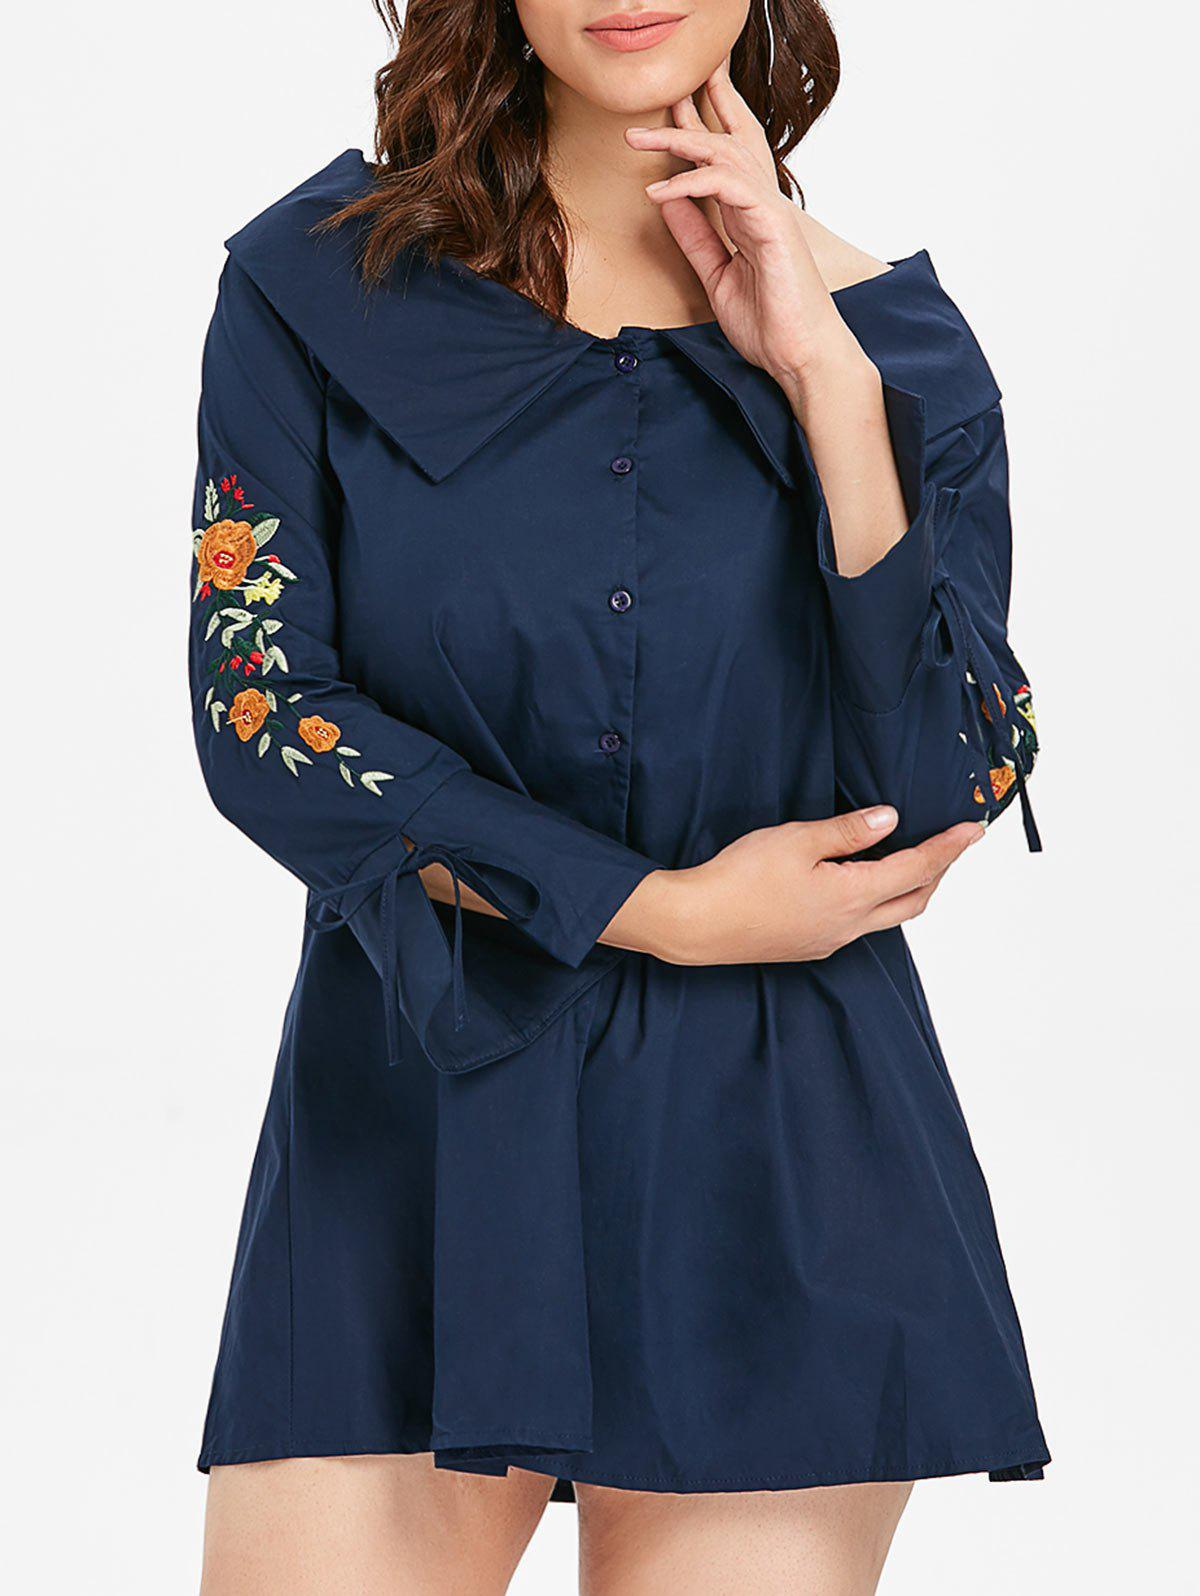 Discount Floral Embroidery Flare Sleeve Plus Size Shirt Dress